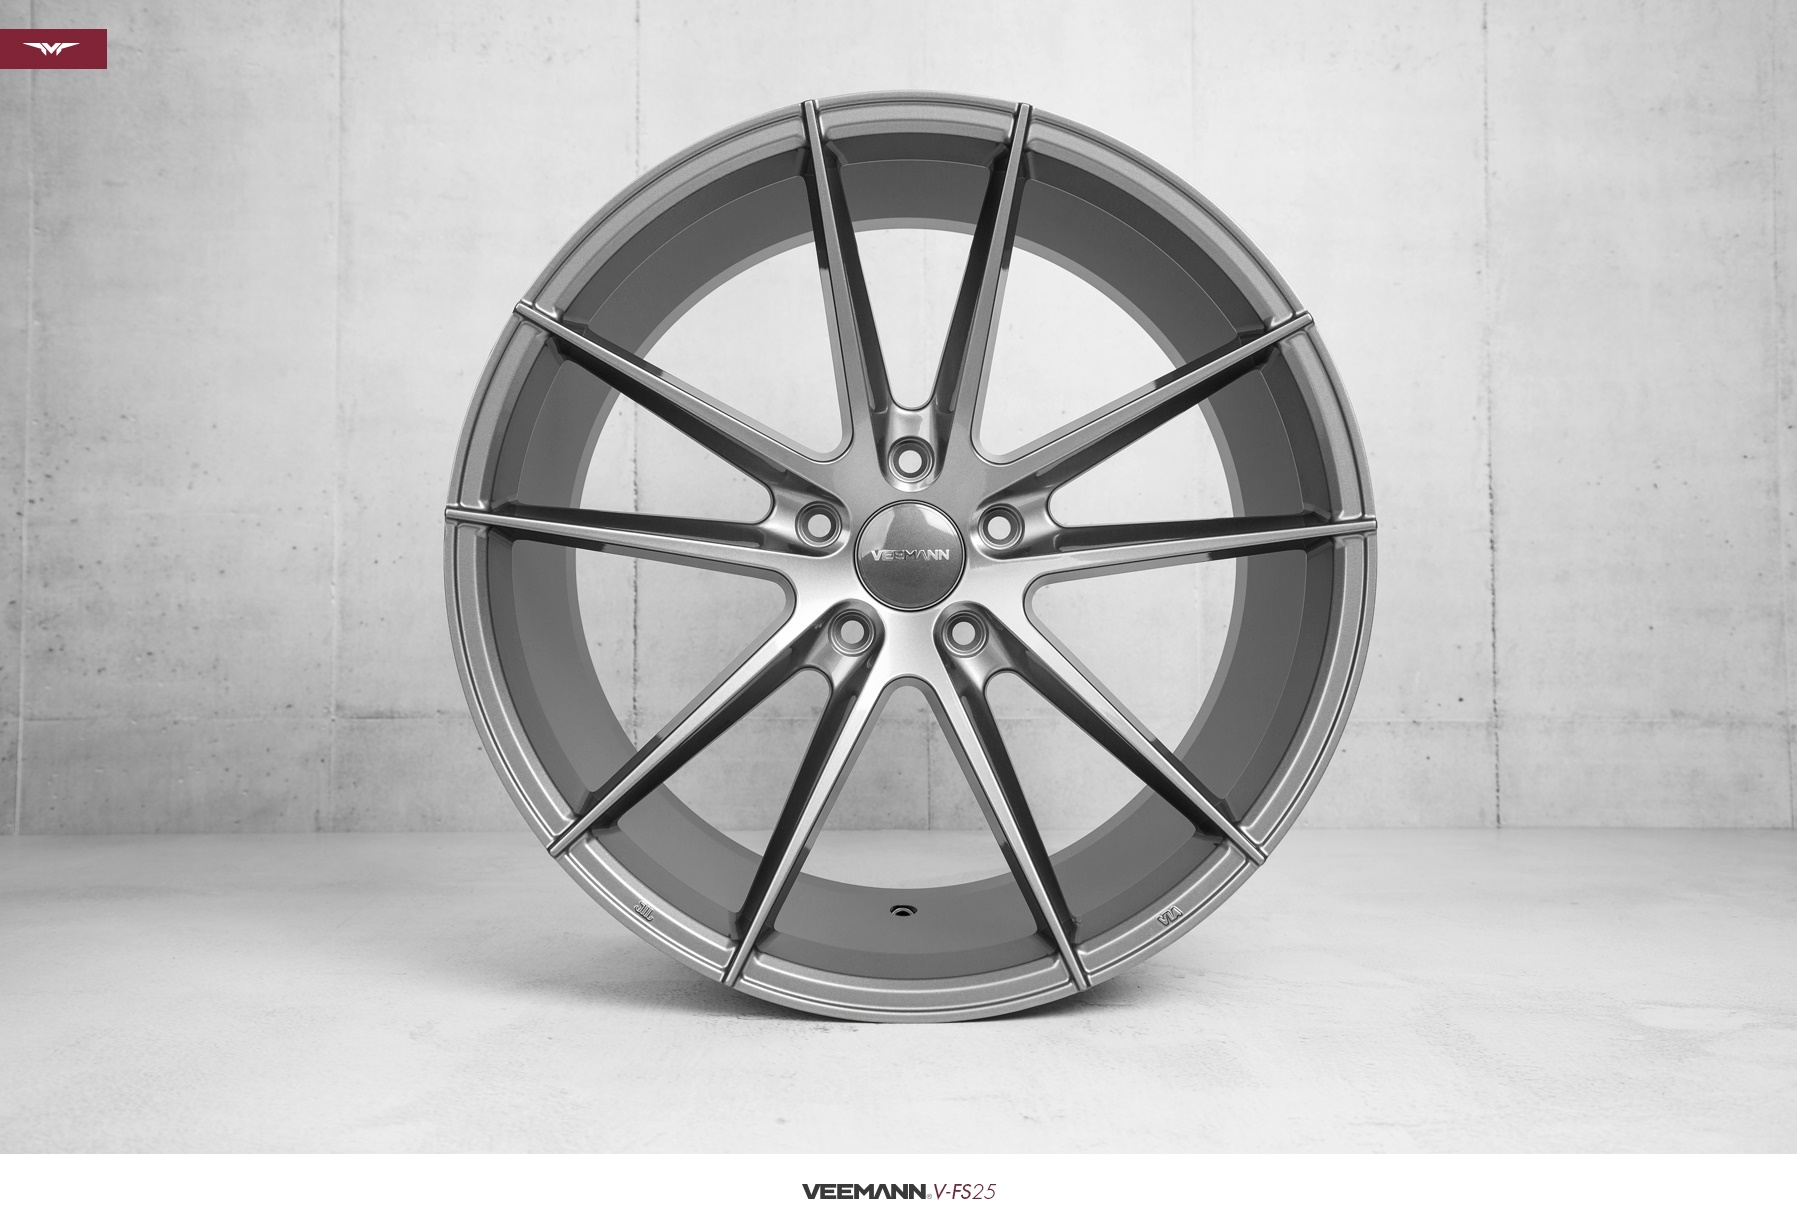 "NEW 20"" VEEMANN V-FS25 ALLOYS IN GLOSS GRAPHITE WITH WIDER 10"" REARS et35/42"